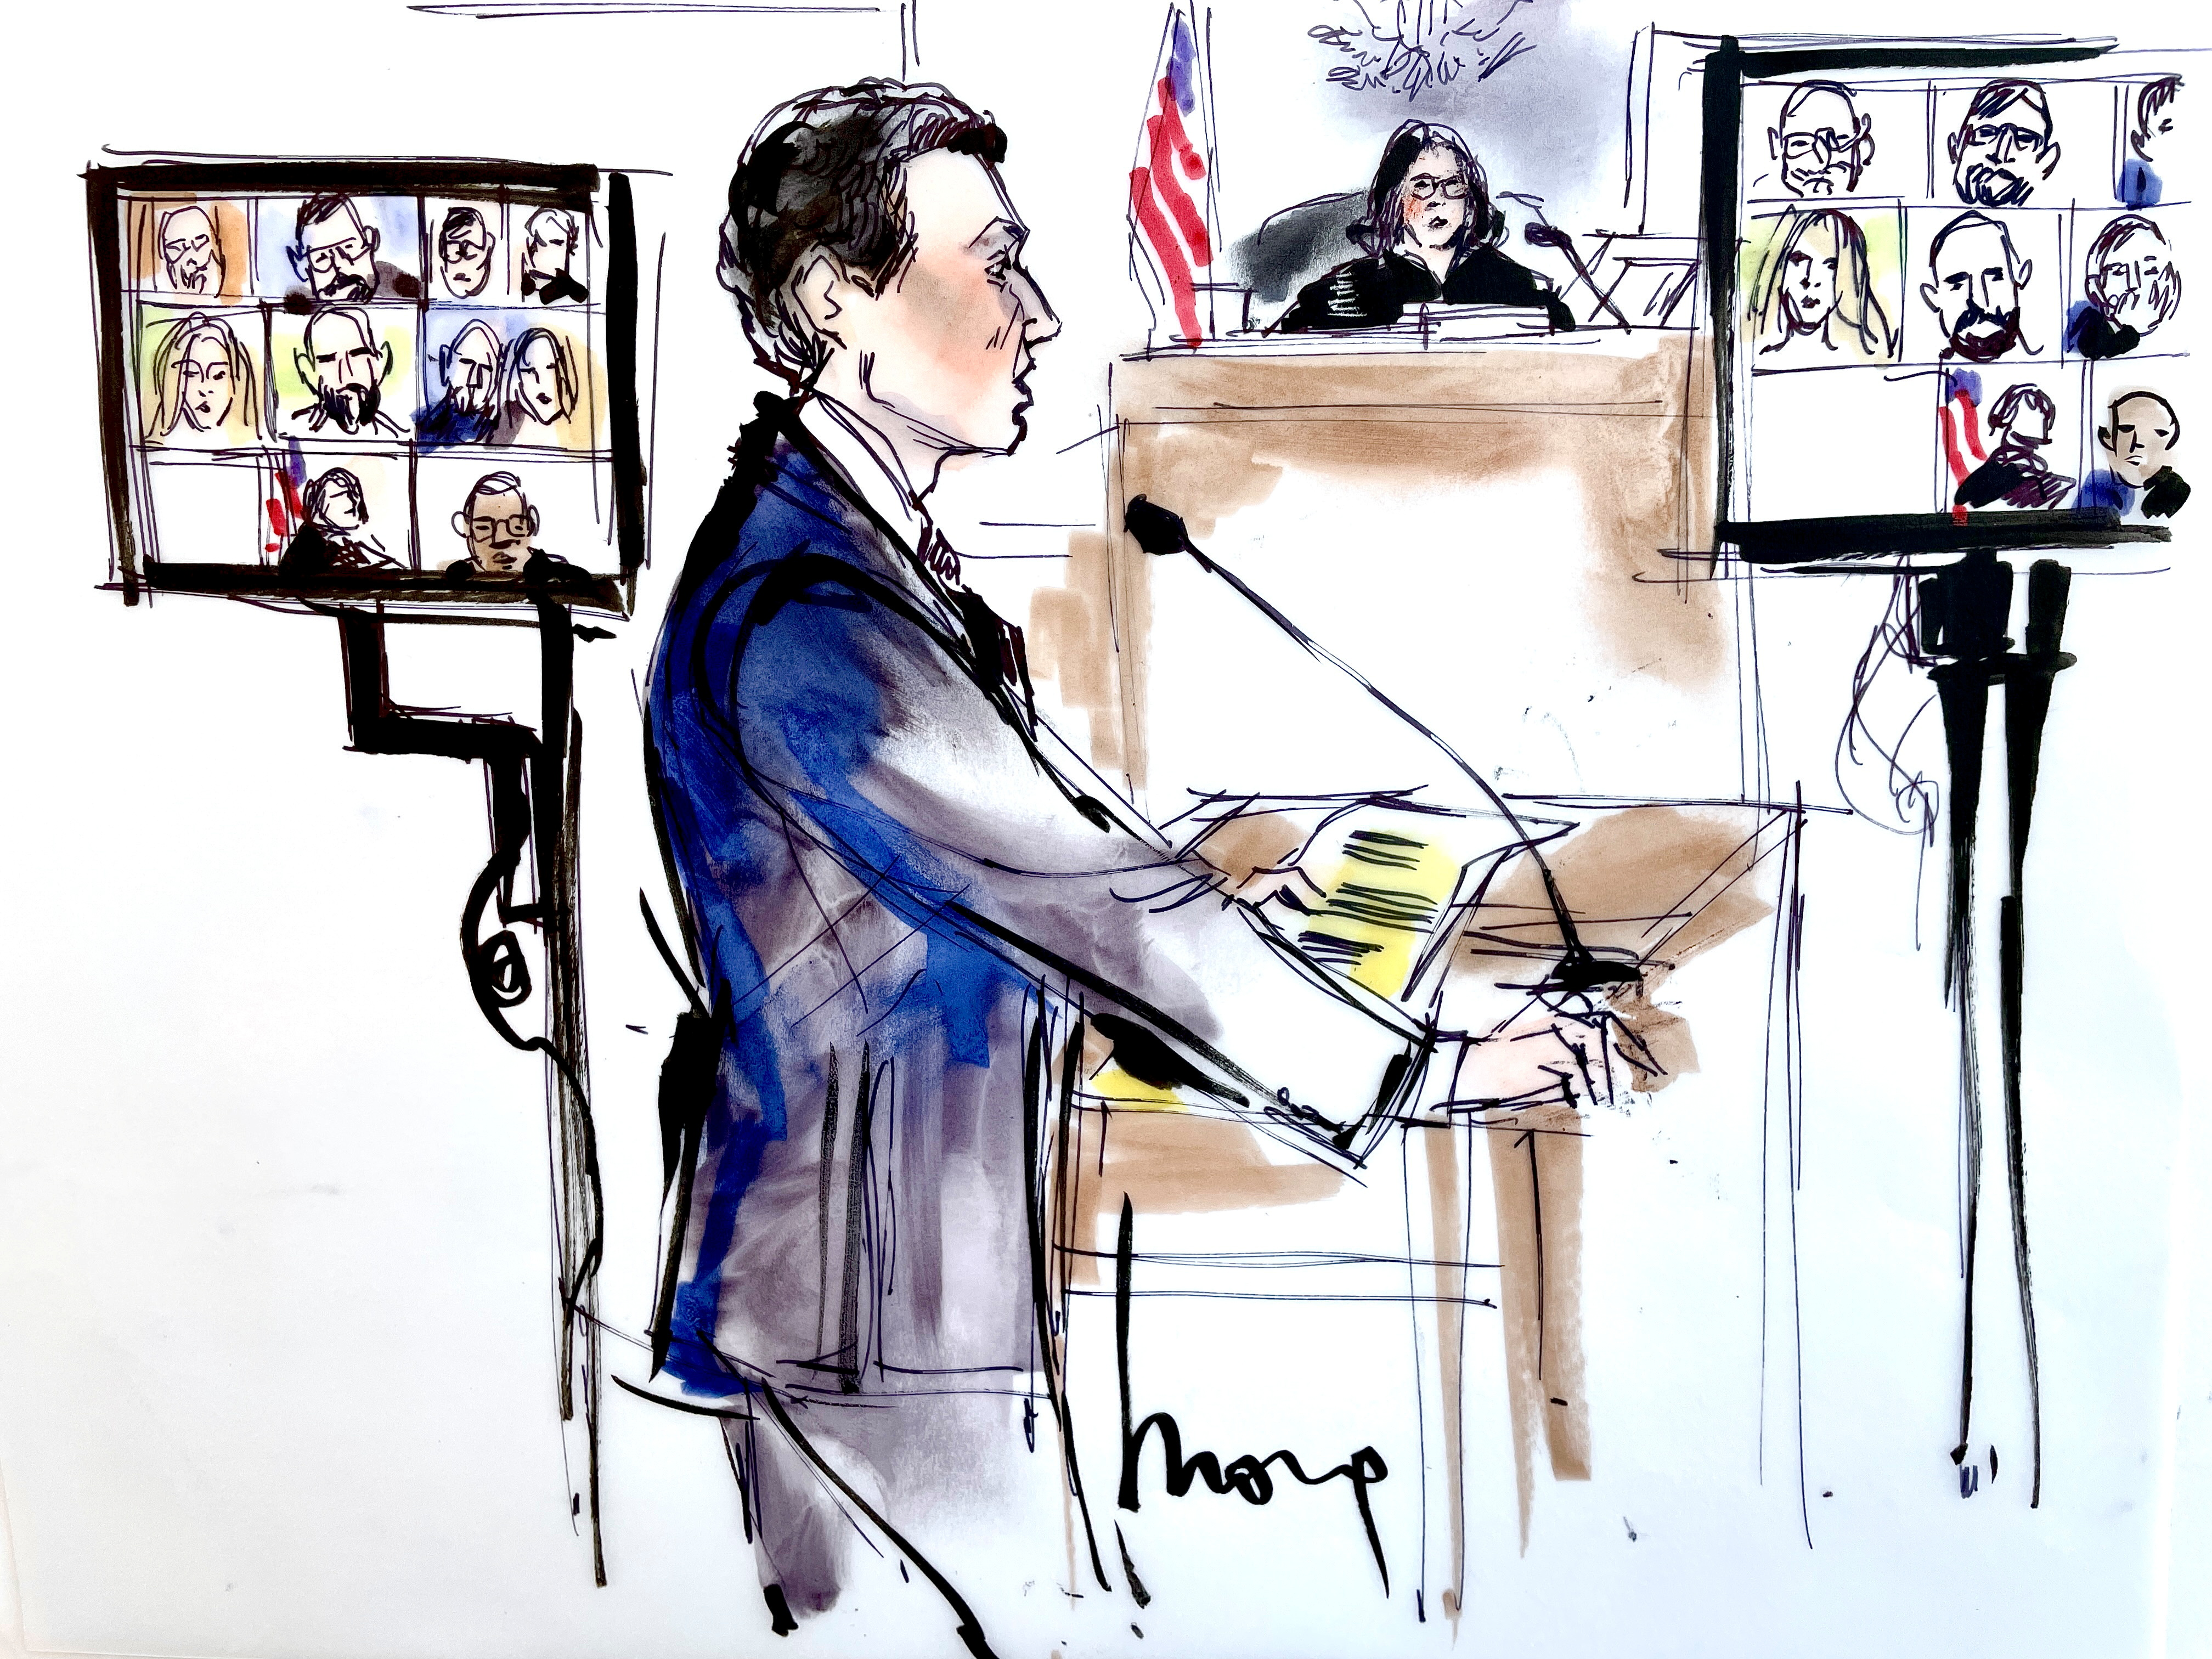 Michael Grimes' attorney Michael Freedman speaks during a virtual court appearance for Grimes and Thomas Barrack, a billionaire friend of Donald Trump who chaired the former president's inaugural fund, in Los Angeles, California, U.S., July 23, 2021 in this courtroom sketch. REUTERS/Mona Edwards